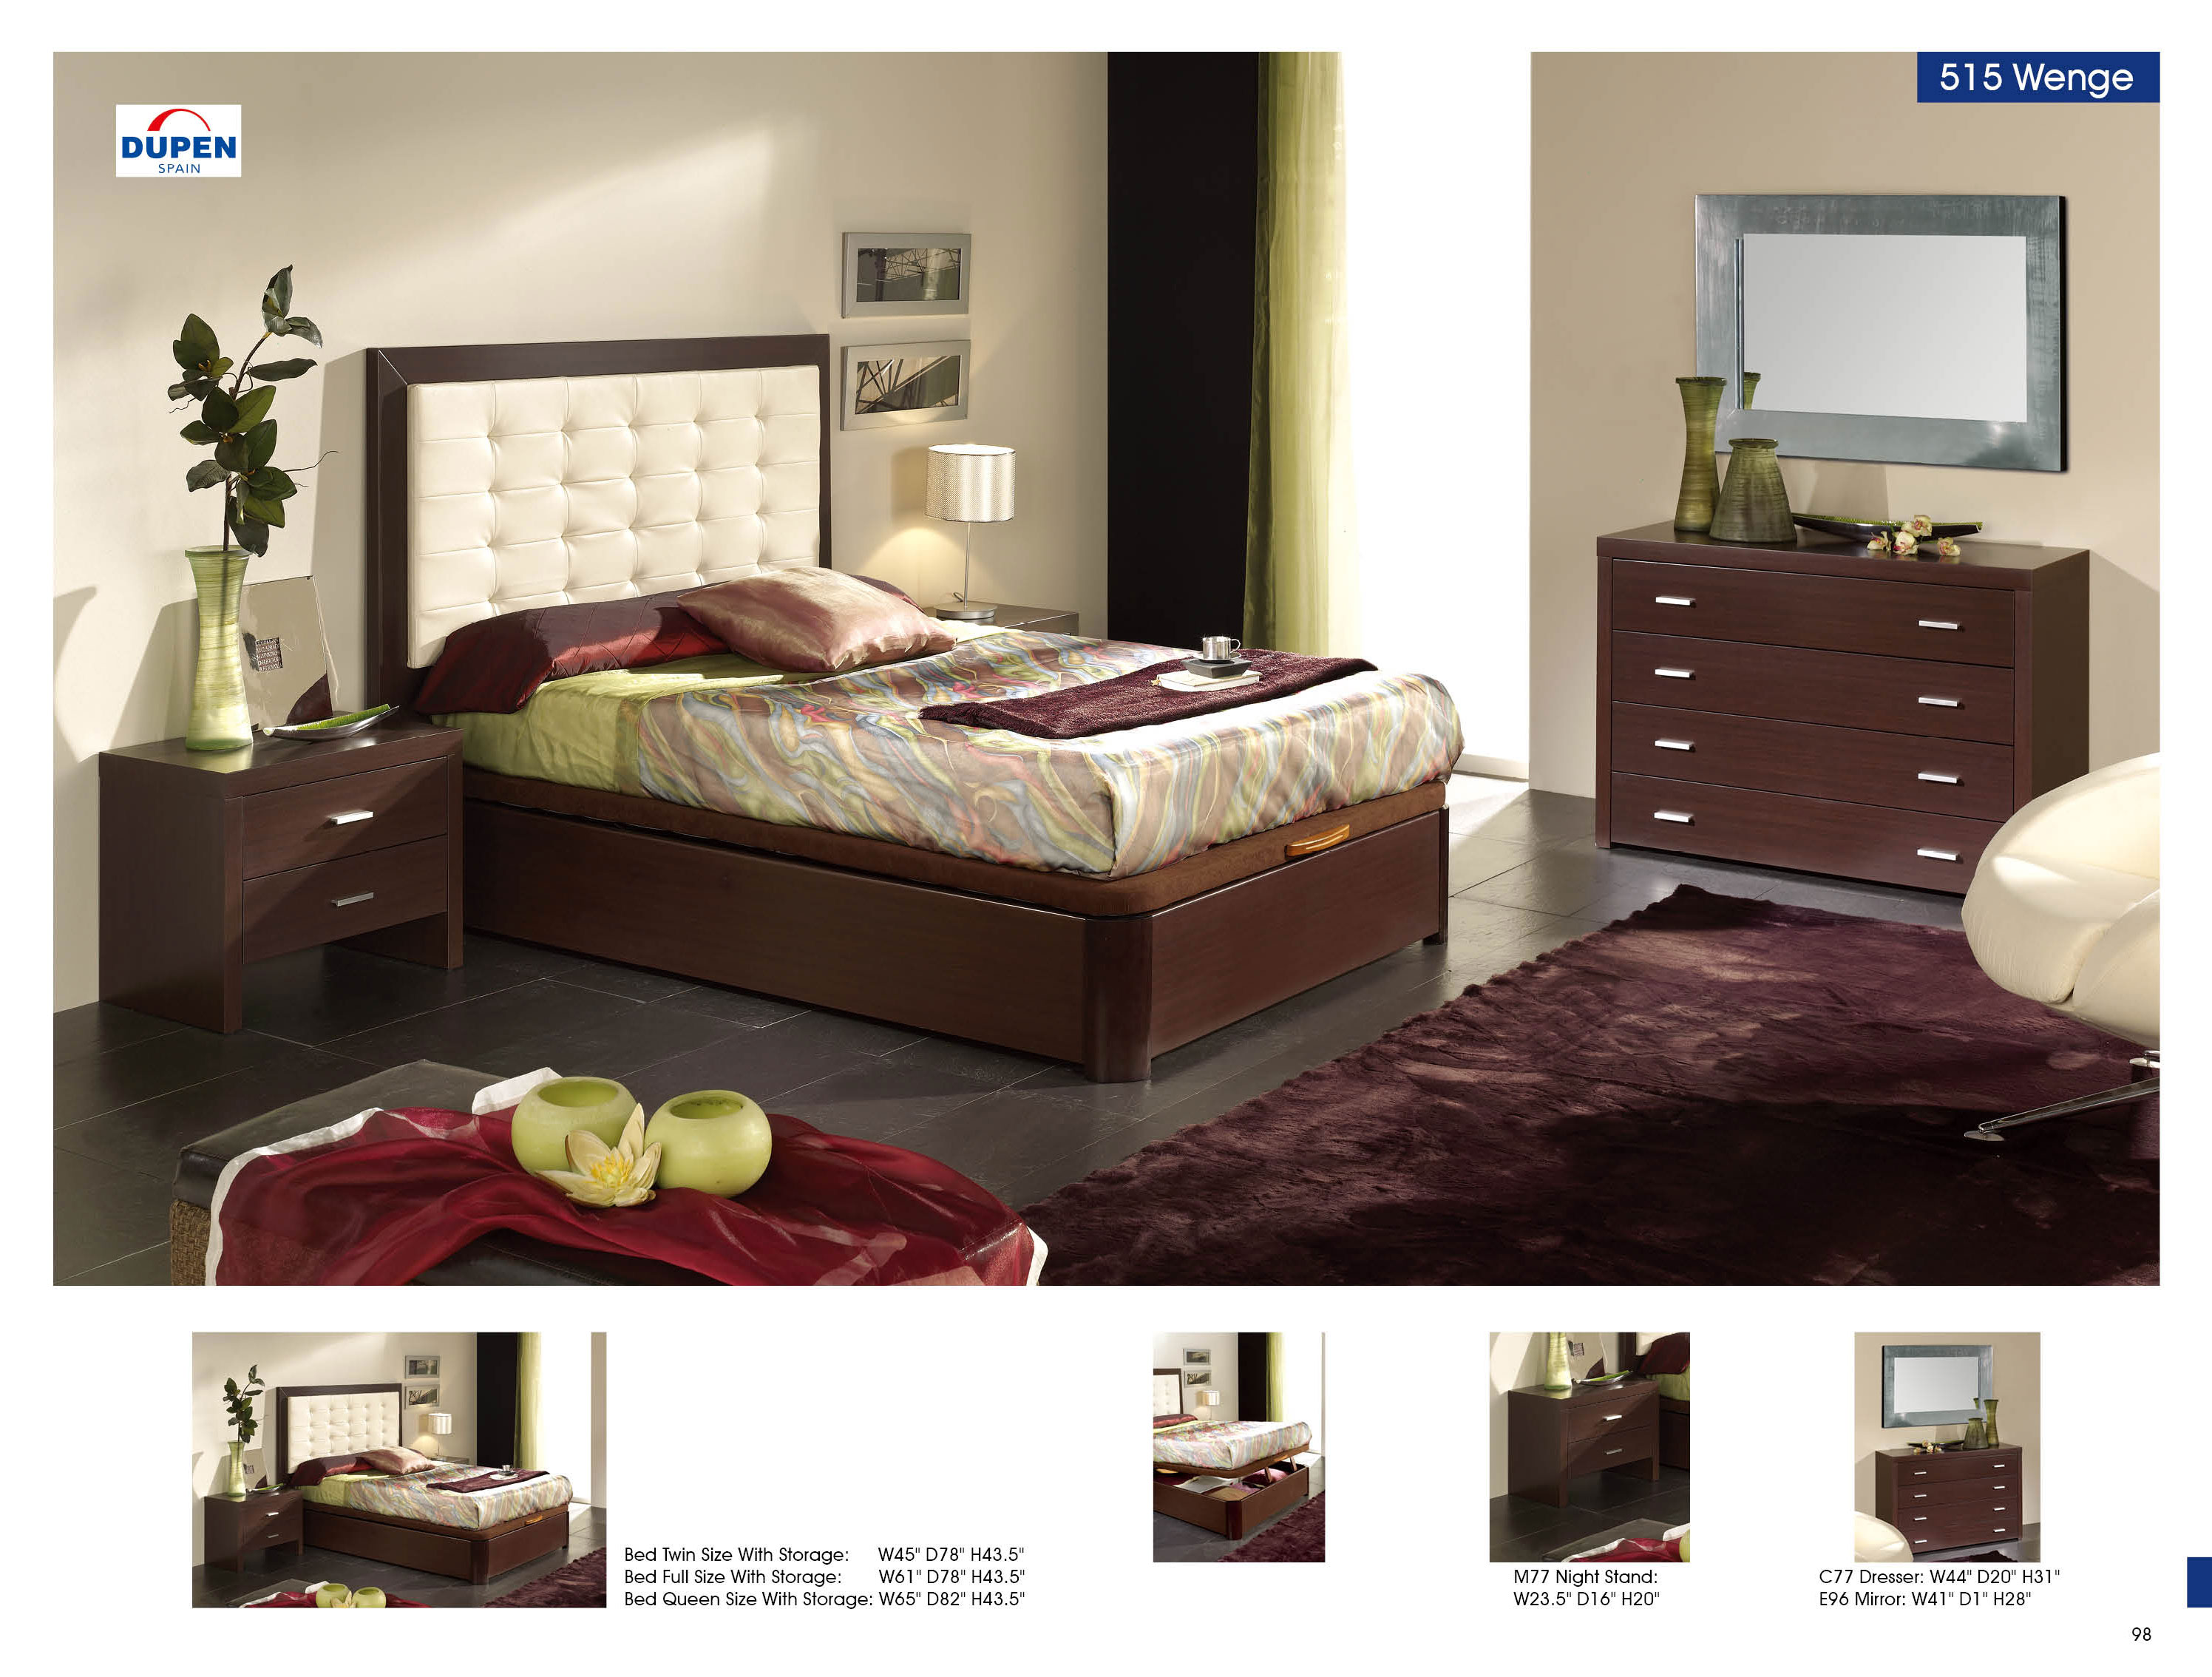 Alicante 515 wenge m77 c77 e96 modern bedrooms for Modern bedroom furniture online